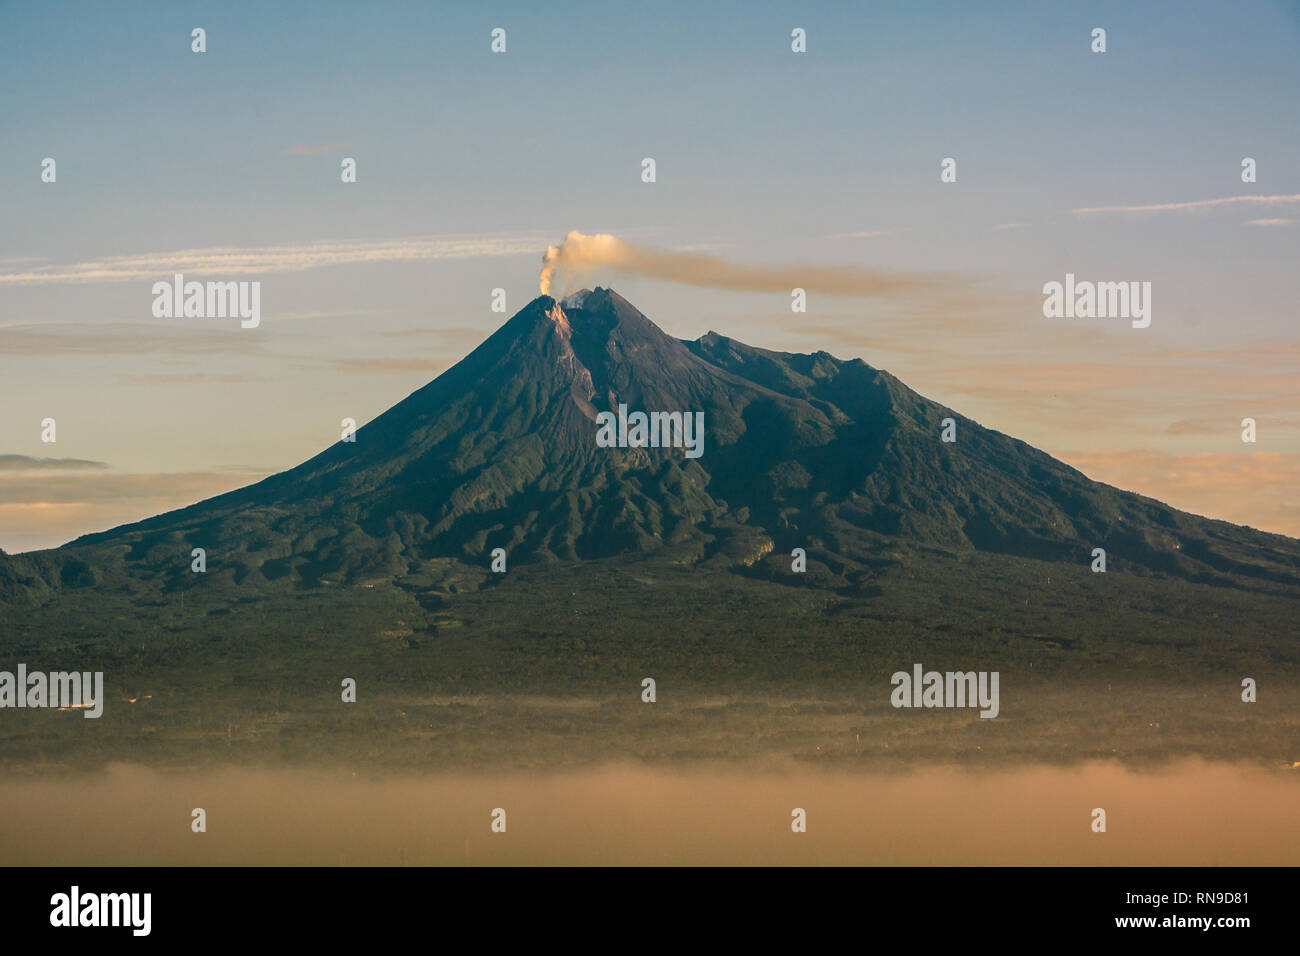 beauty of sunrise merapi mountain, indonesia. Mount Merapi is one of the most active mountains in Indonesia - Stock Image